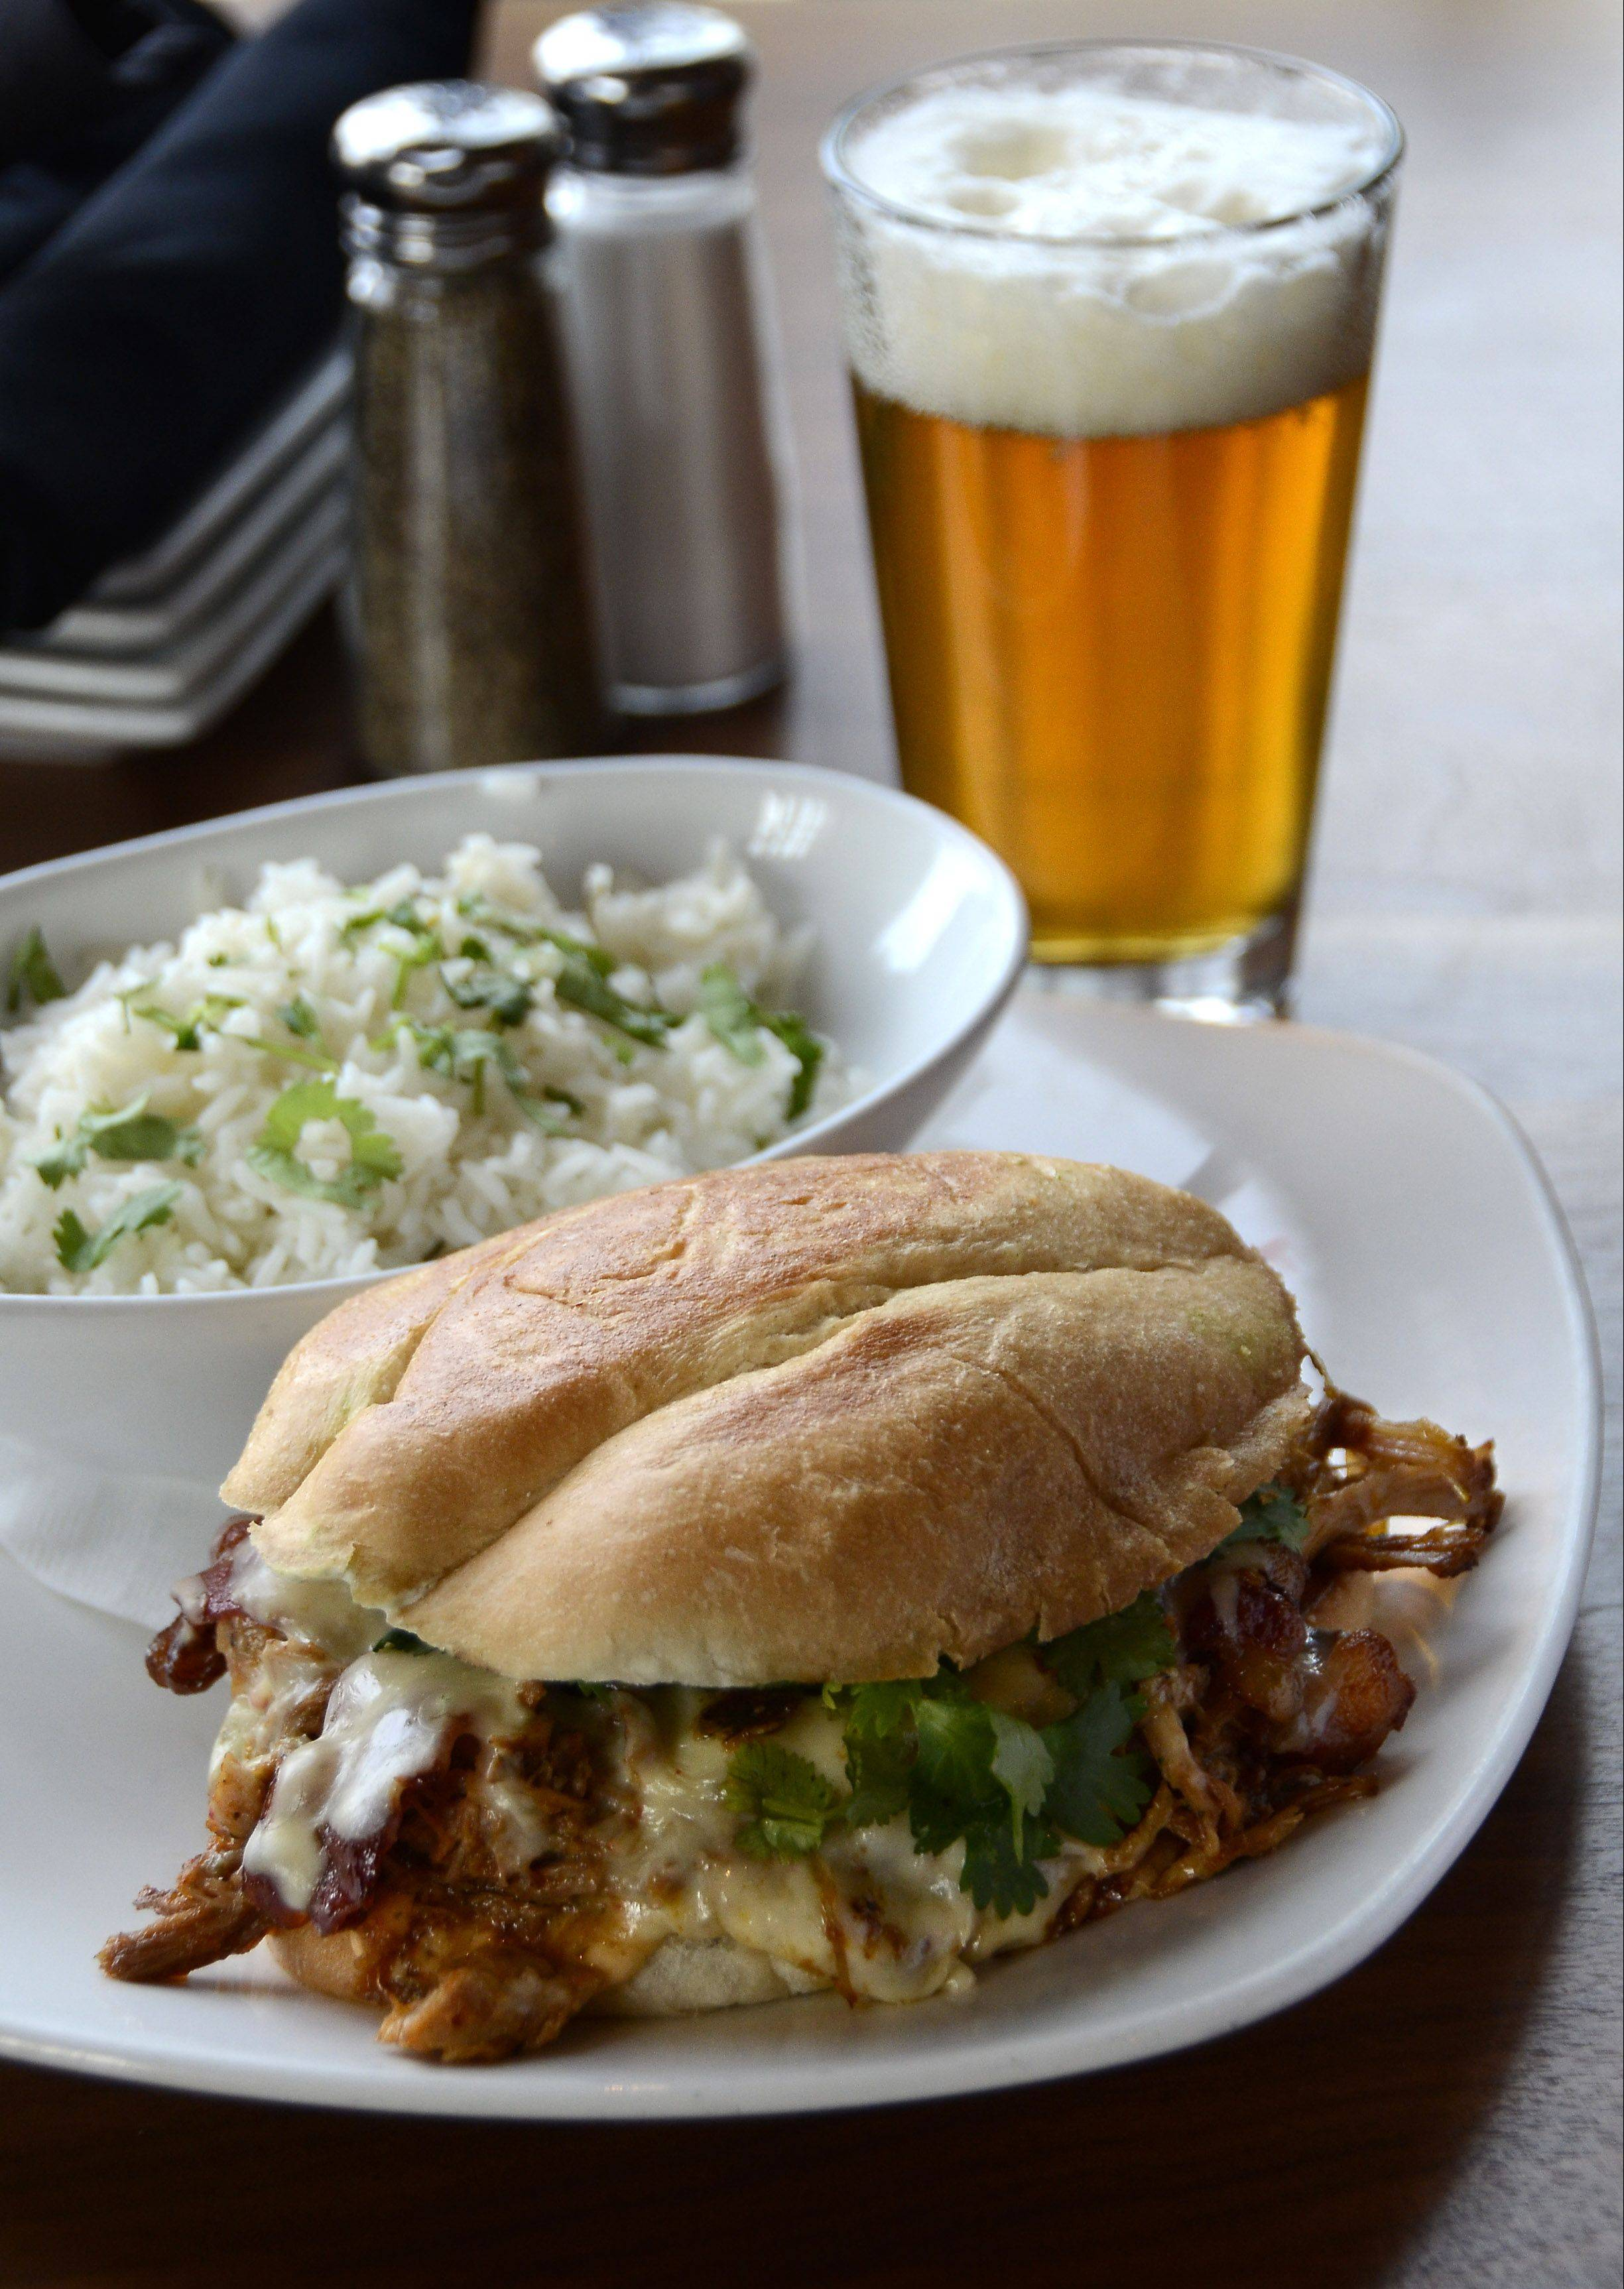 The Mexibano sandwich features spicy pulled pork with bacon and Chihuahua cheese and is one of the many well-crafted dishes available at Park Tavern in Rosemont.